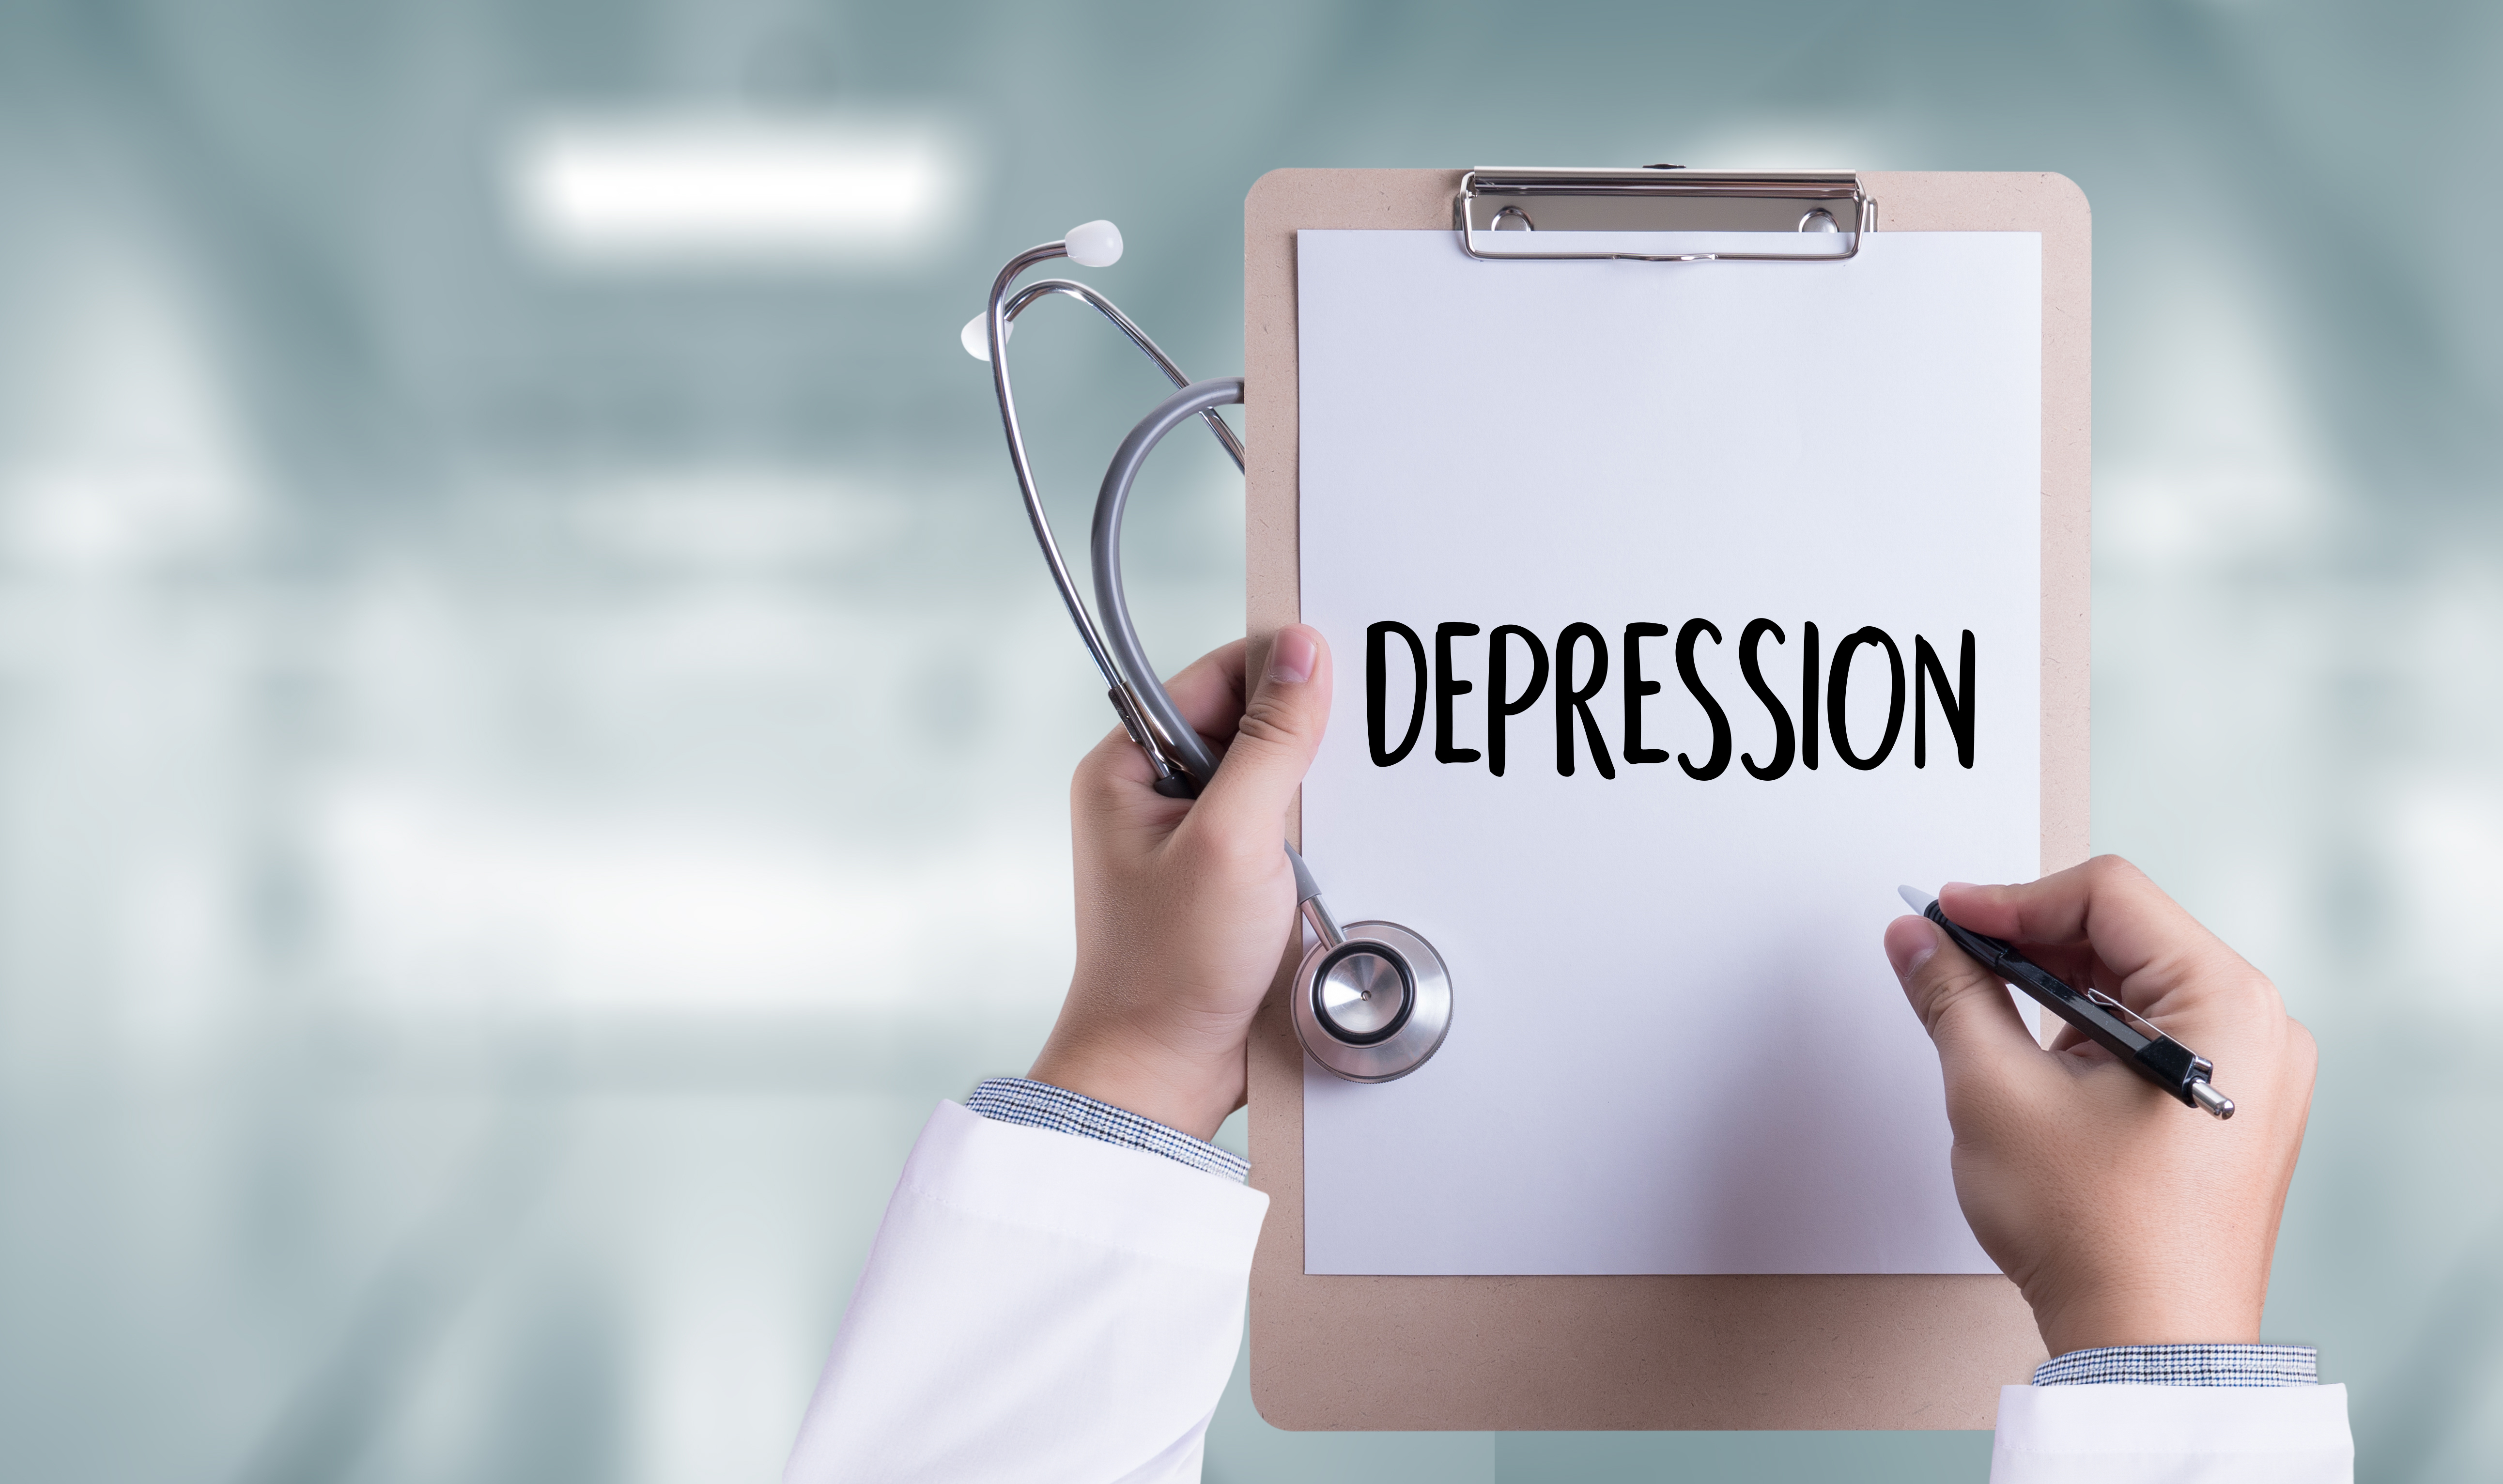 http://blogs.jpmsonline.com/wp-content/uploads/2017/06/bigstock-Depression-Miserable-Depresse-158698946.jpg